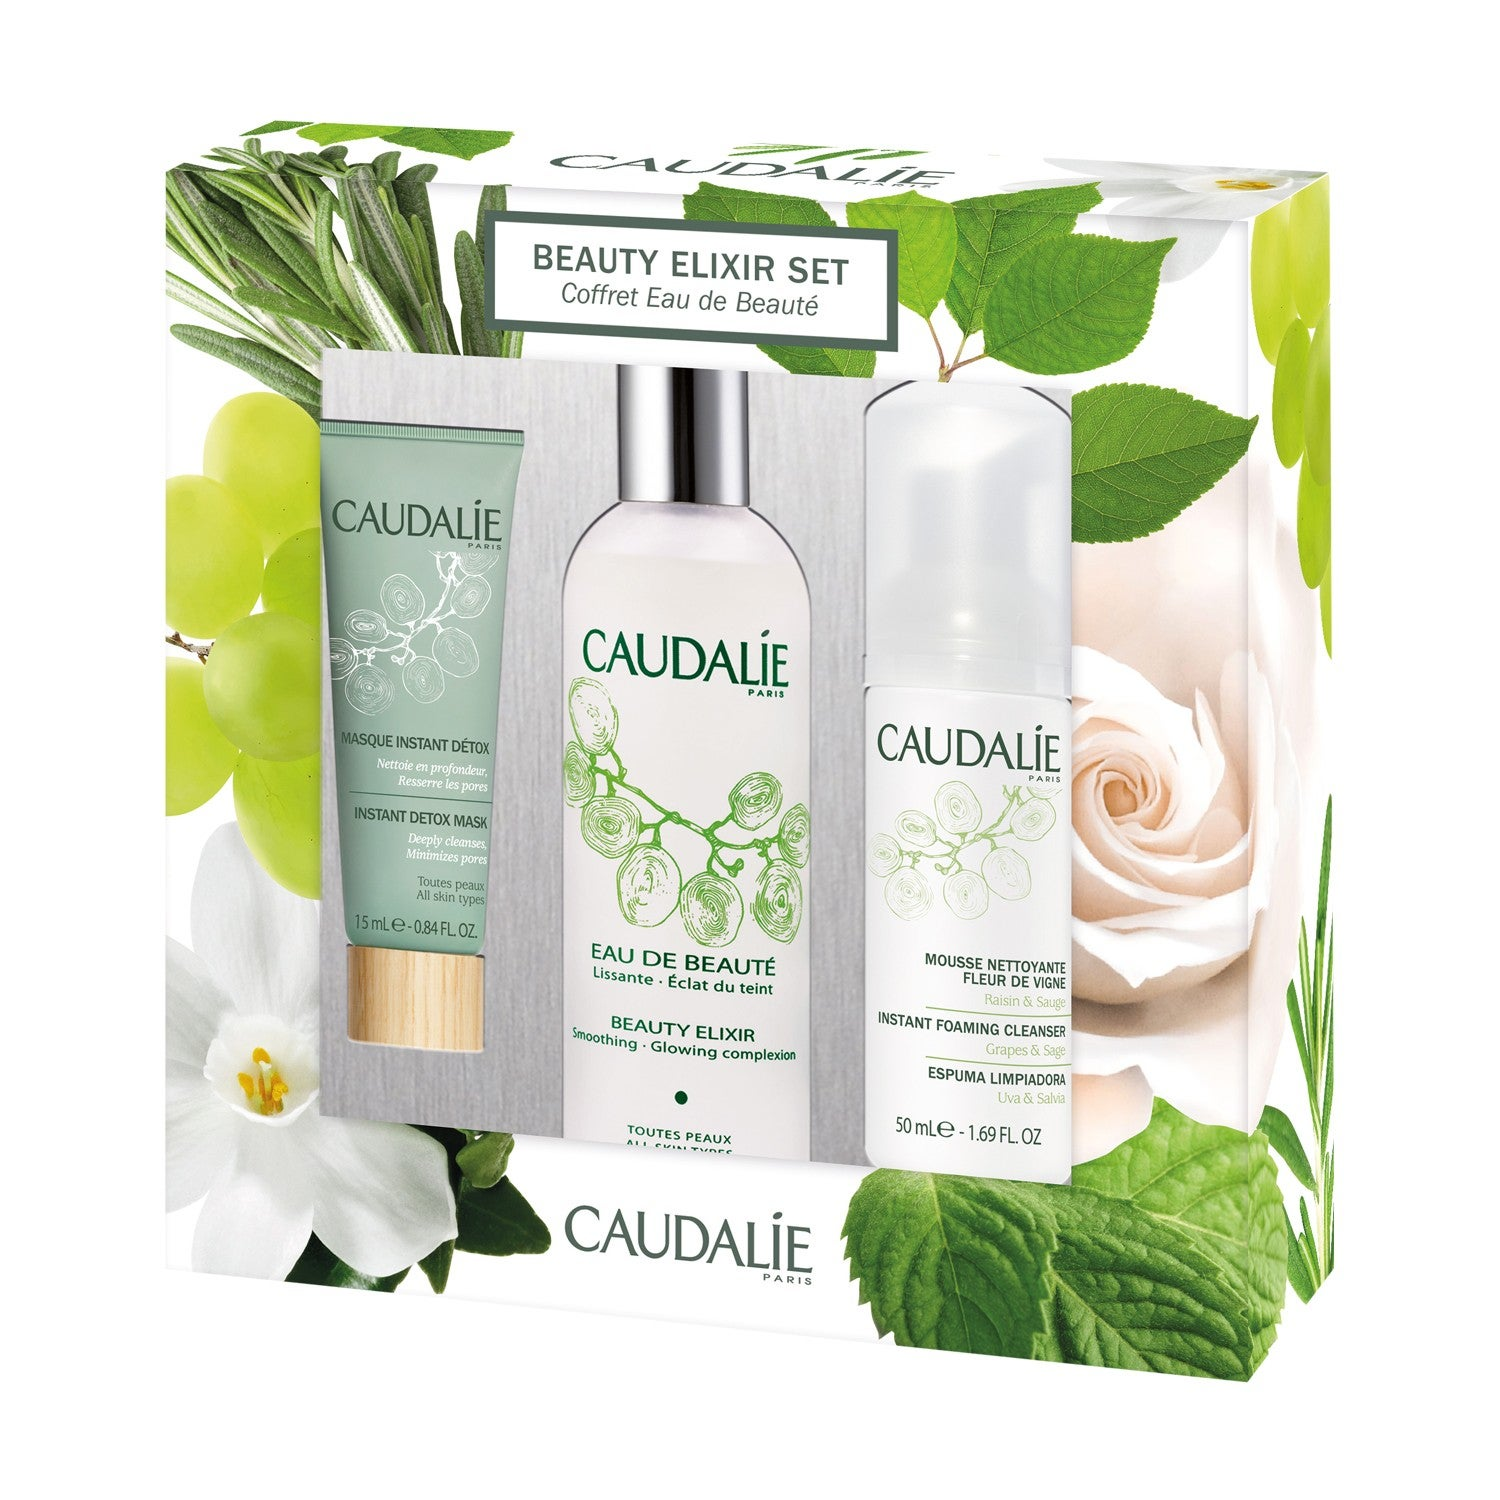 Something caudalie facial products really